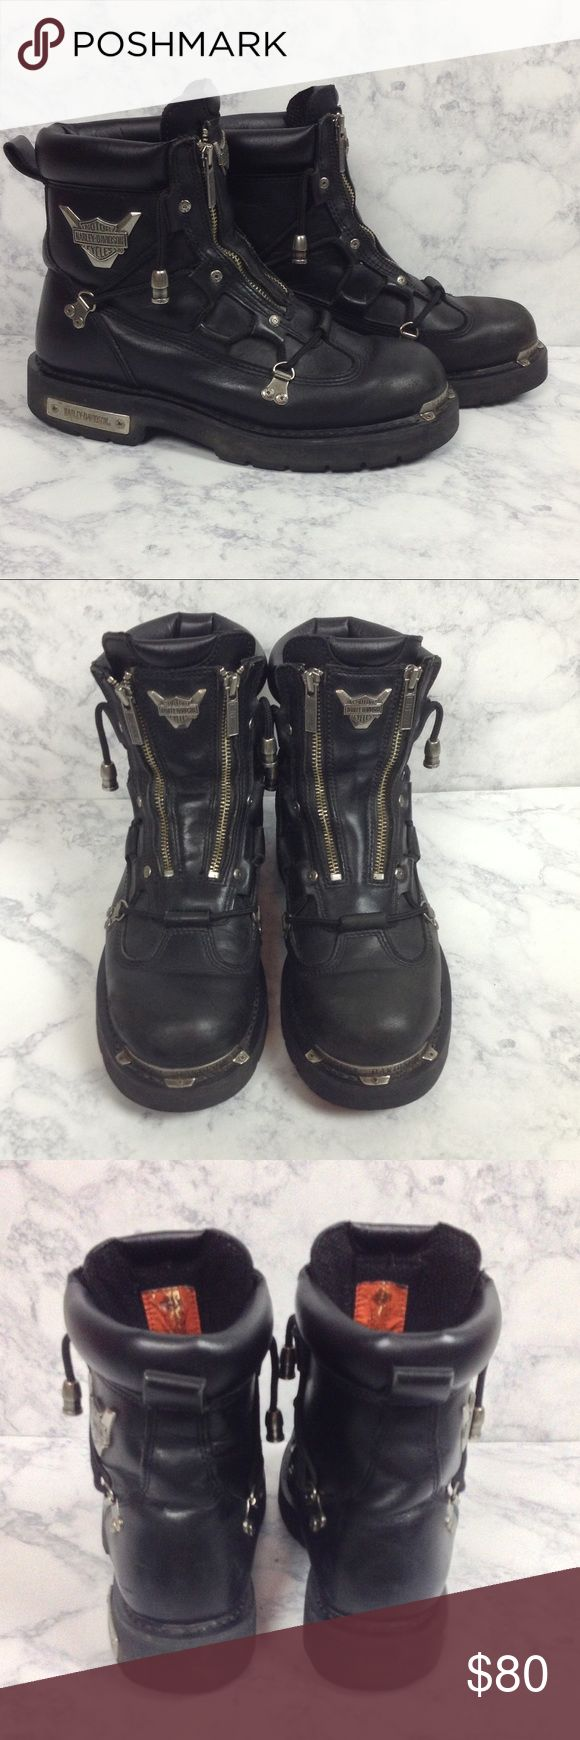 HARLEY DAVIDSON Men's Brake Light Motorcycle Boots Gently used black leather men's motorcycle riding boots in size 9.5. In excellent condition. No trades Harley-Davidson Shoes Boots